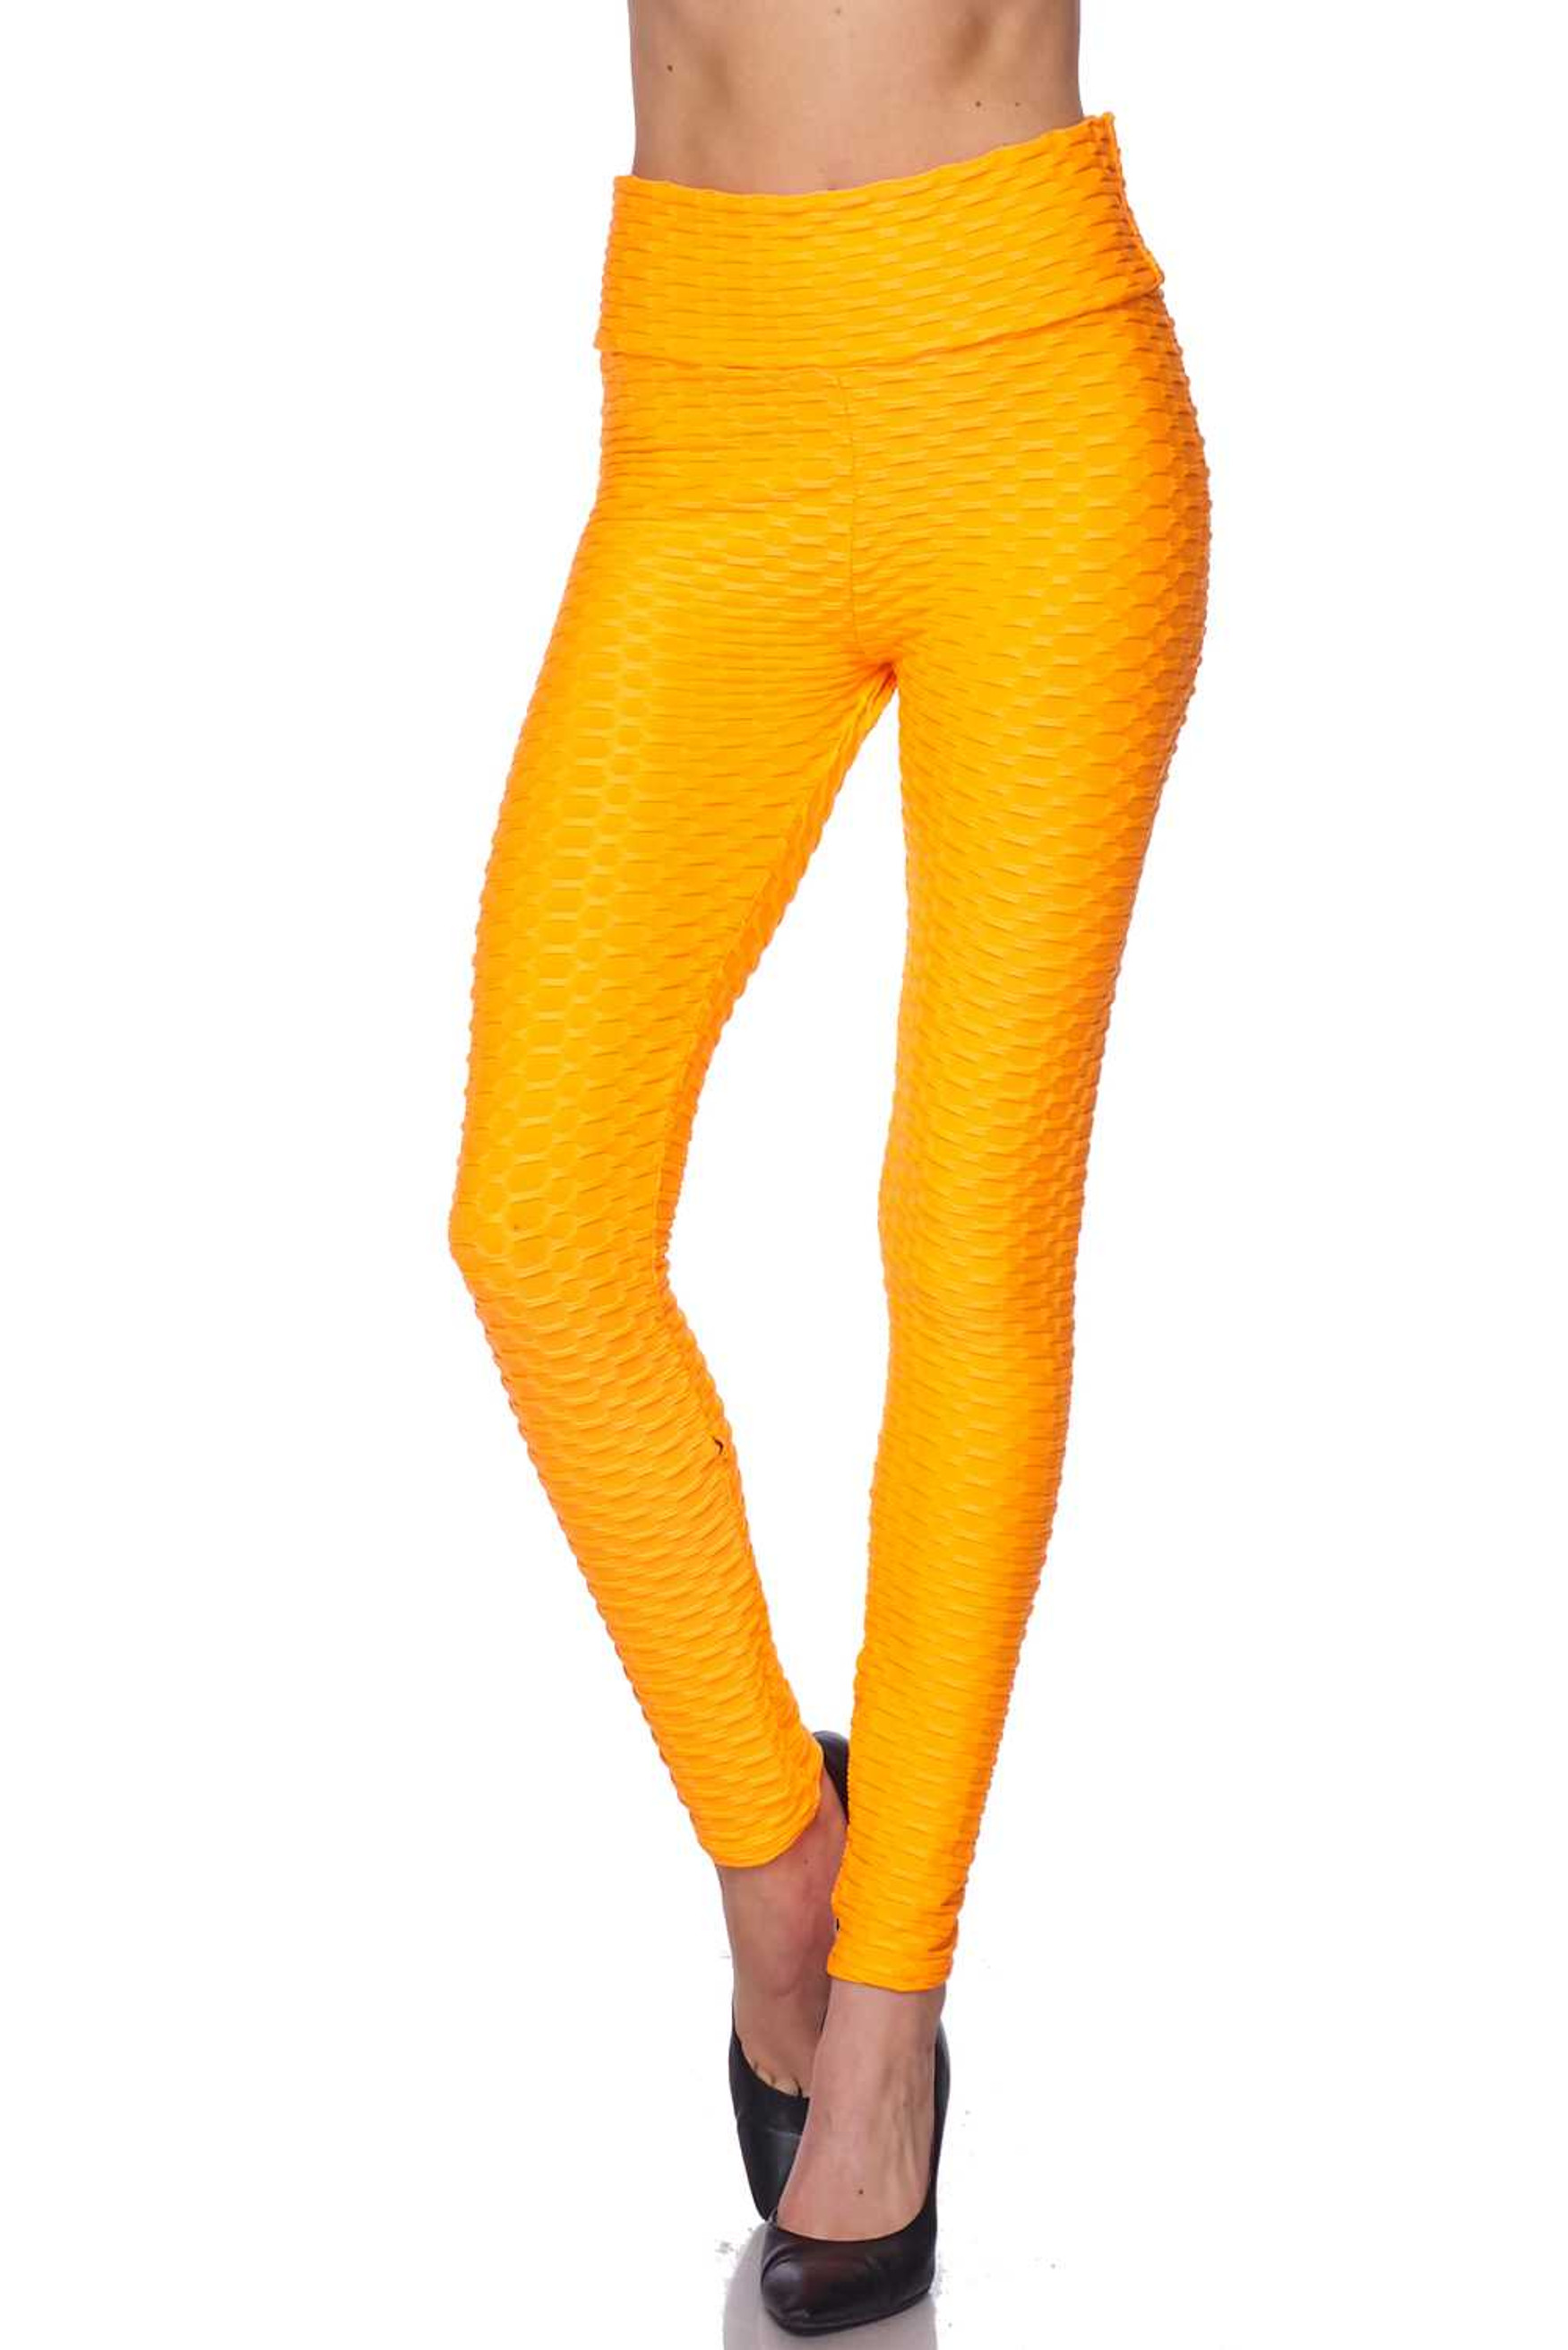 Scrunch Butt Textured High Waisted Plus Size Leggings with Pockets